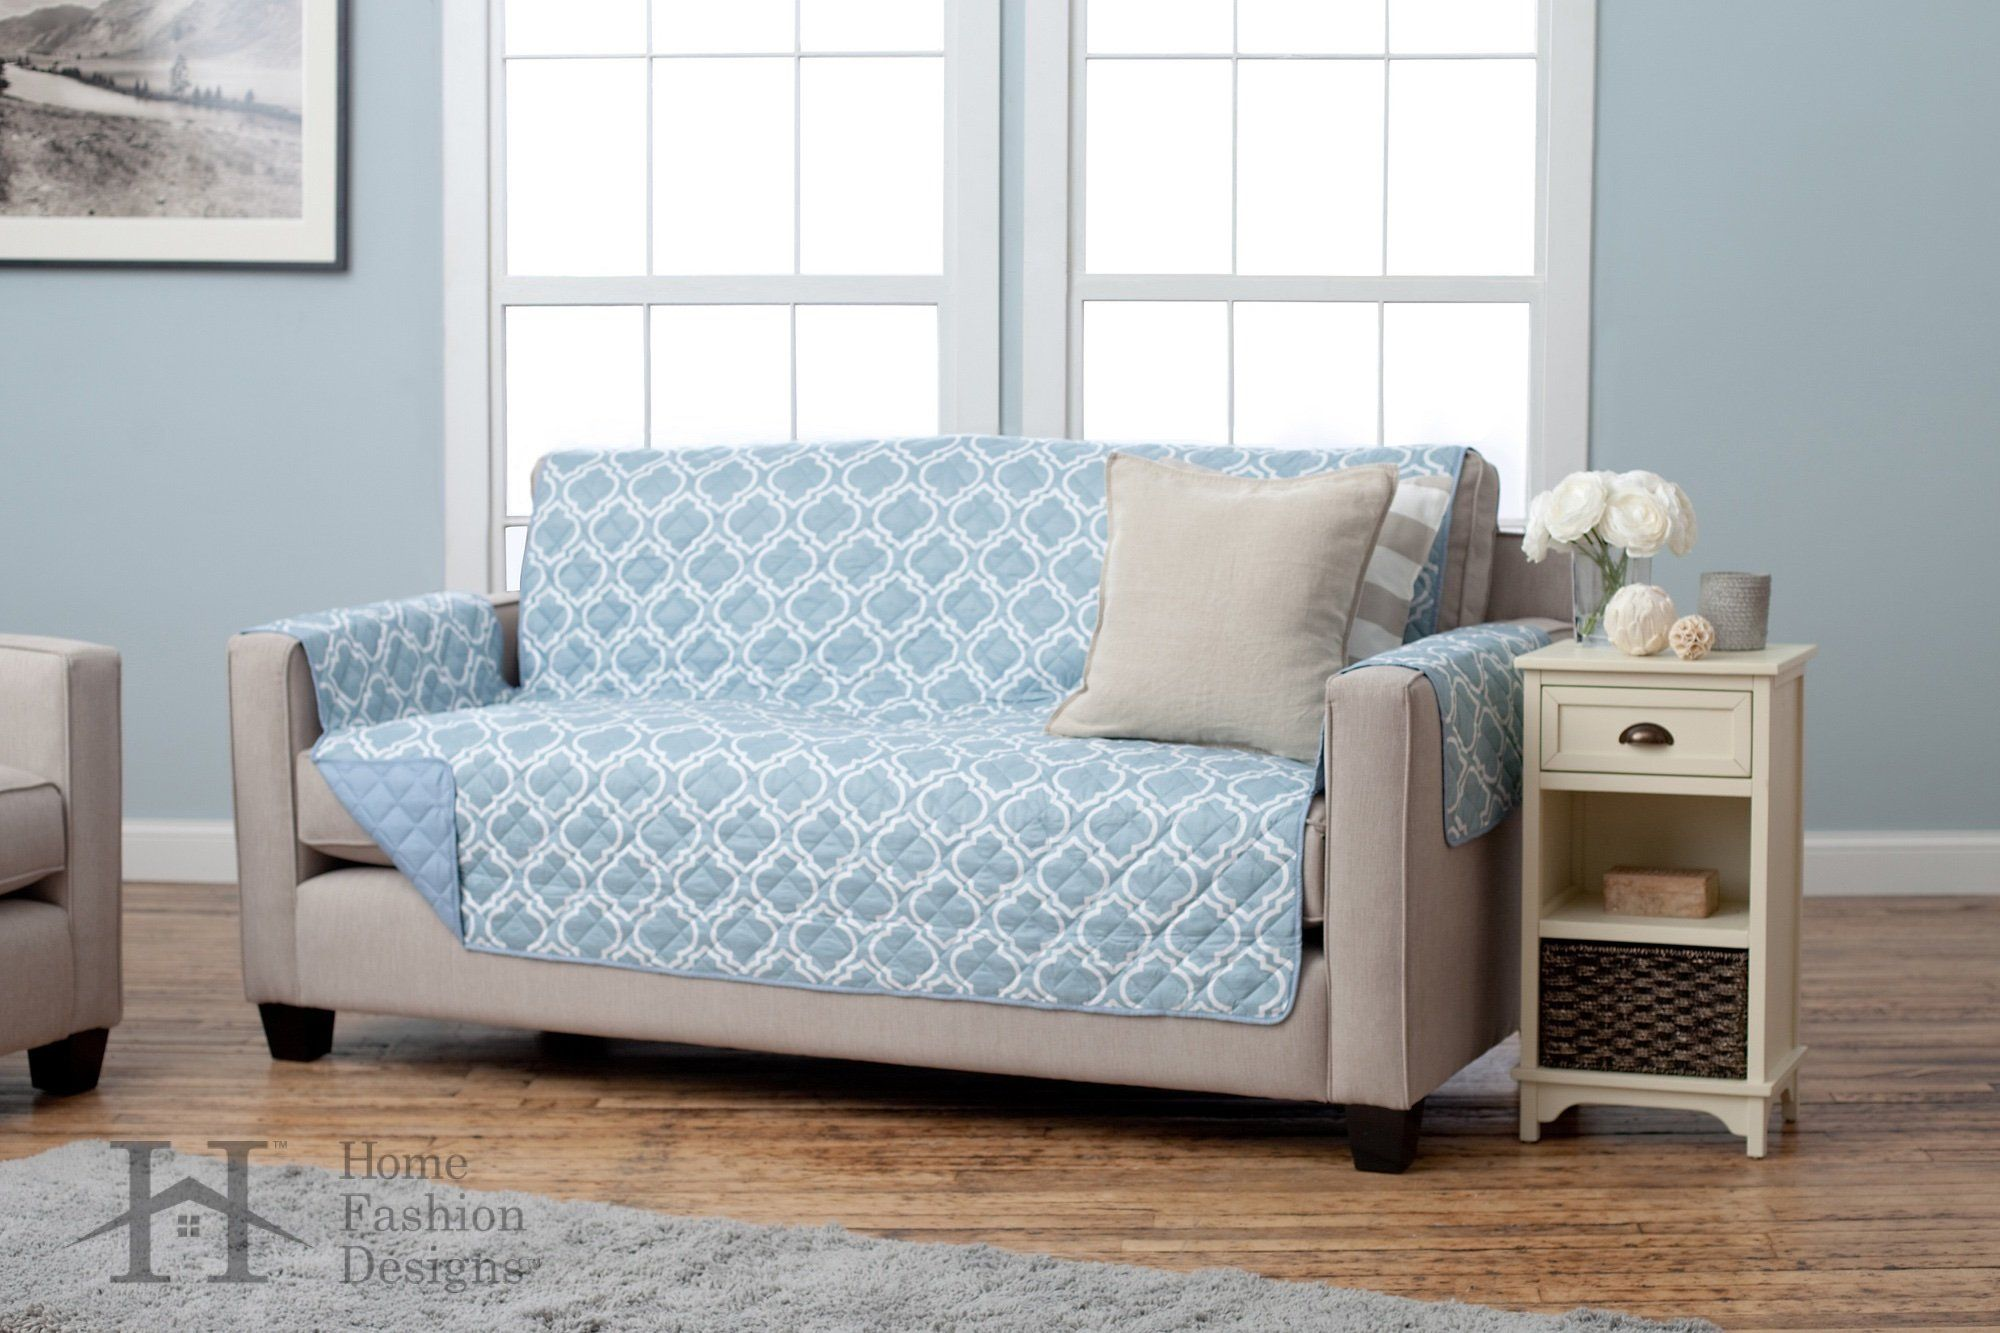 Adalyn Collection Deluxe Reversible Quilted Furniture Protector